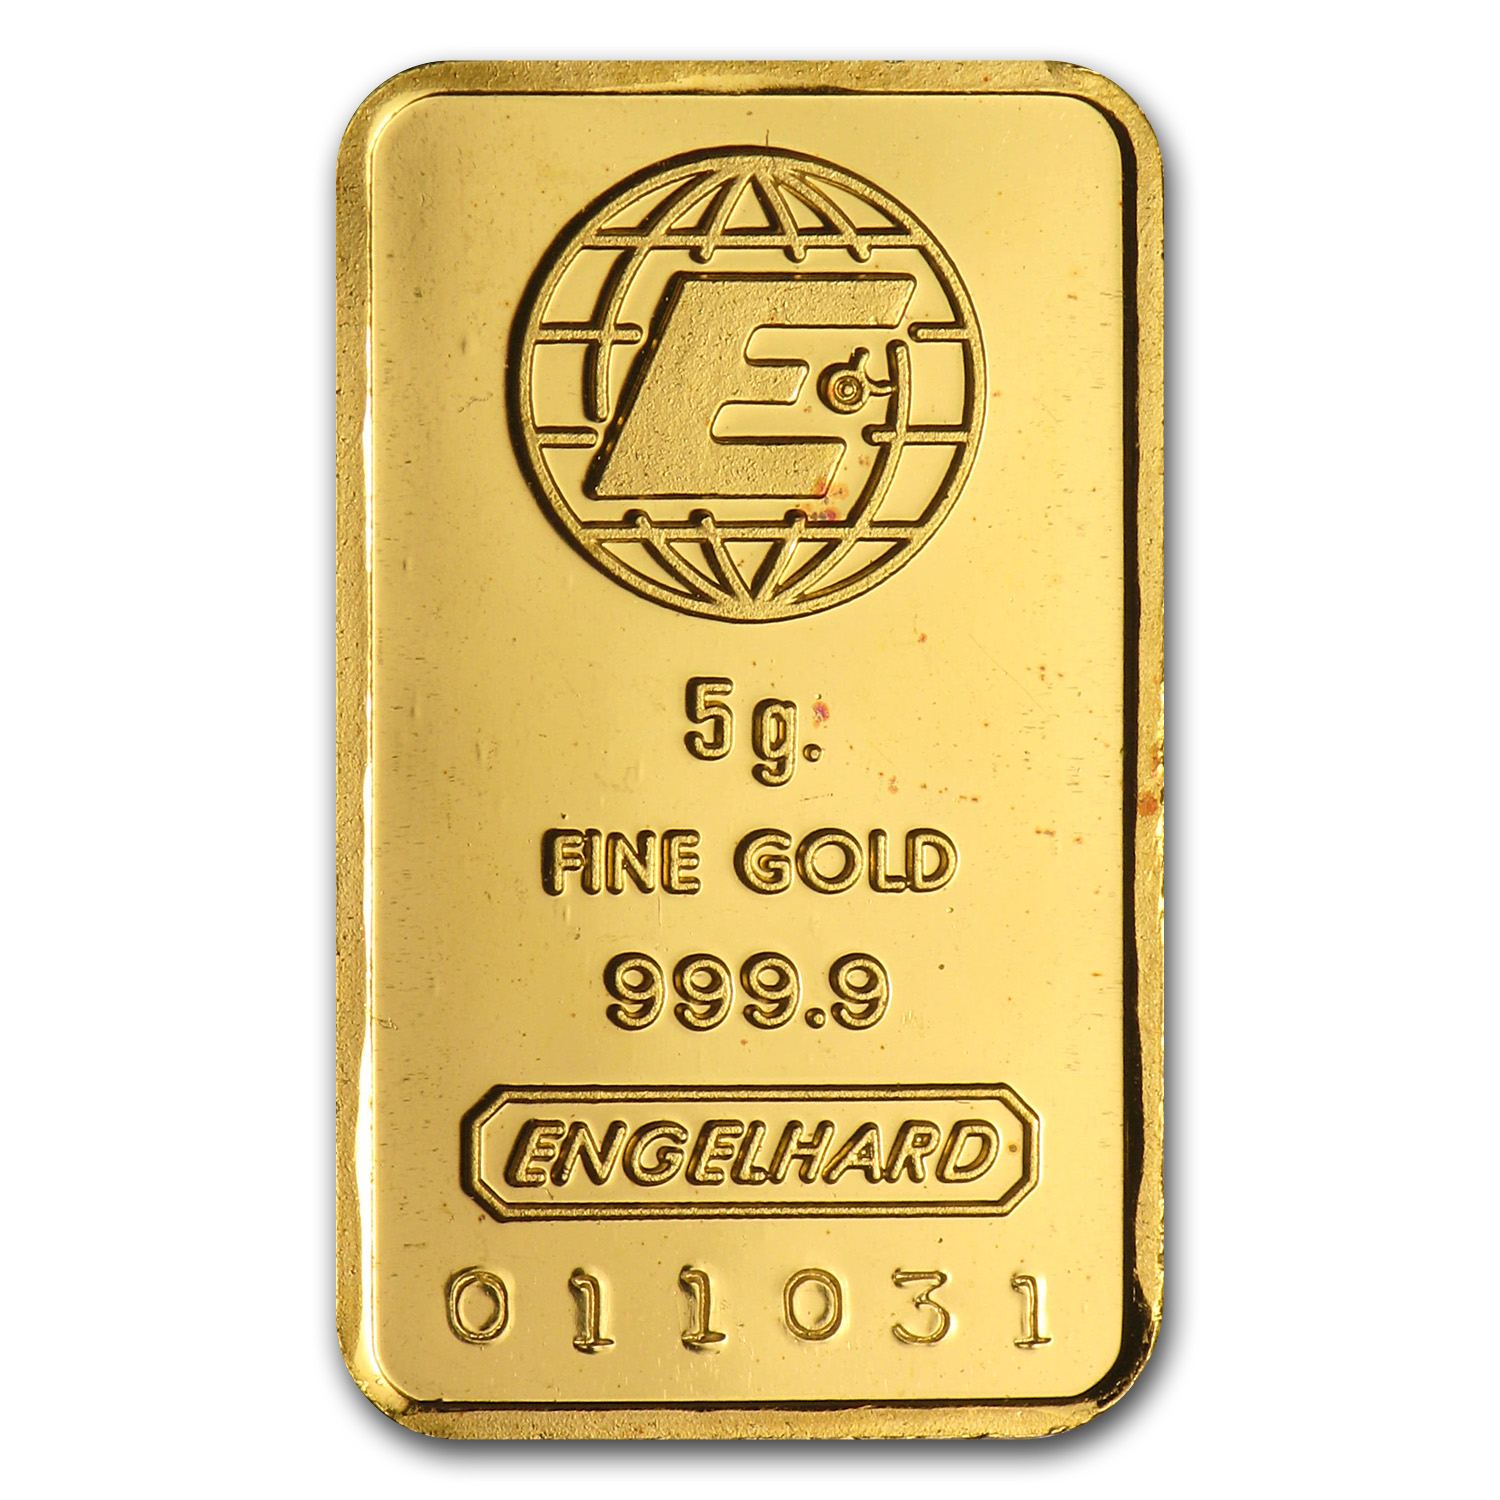 5 gram Gold Bar - Engelhard